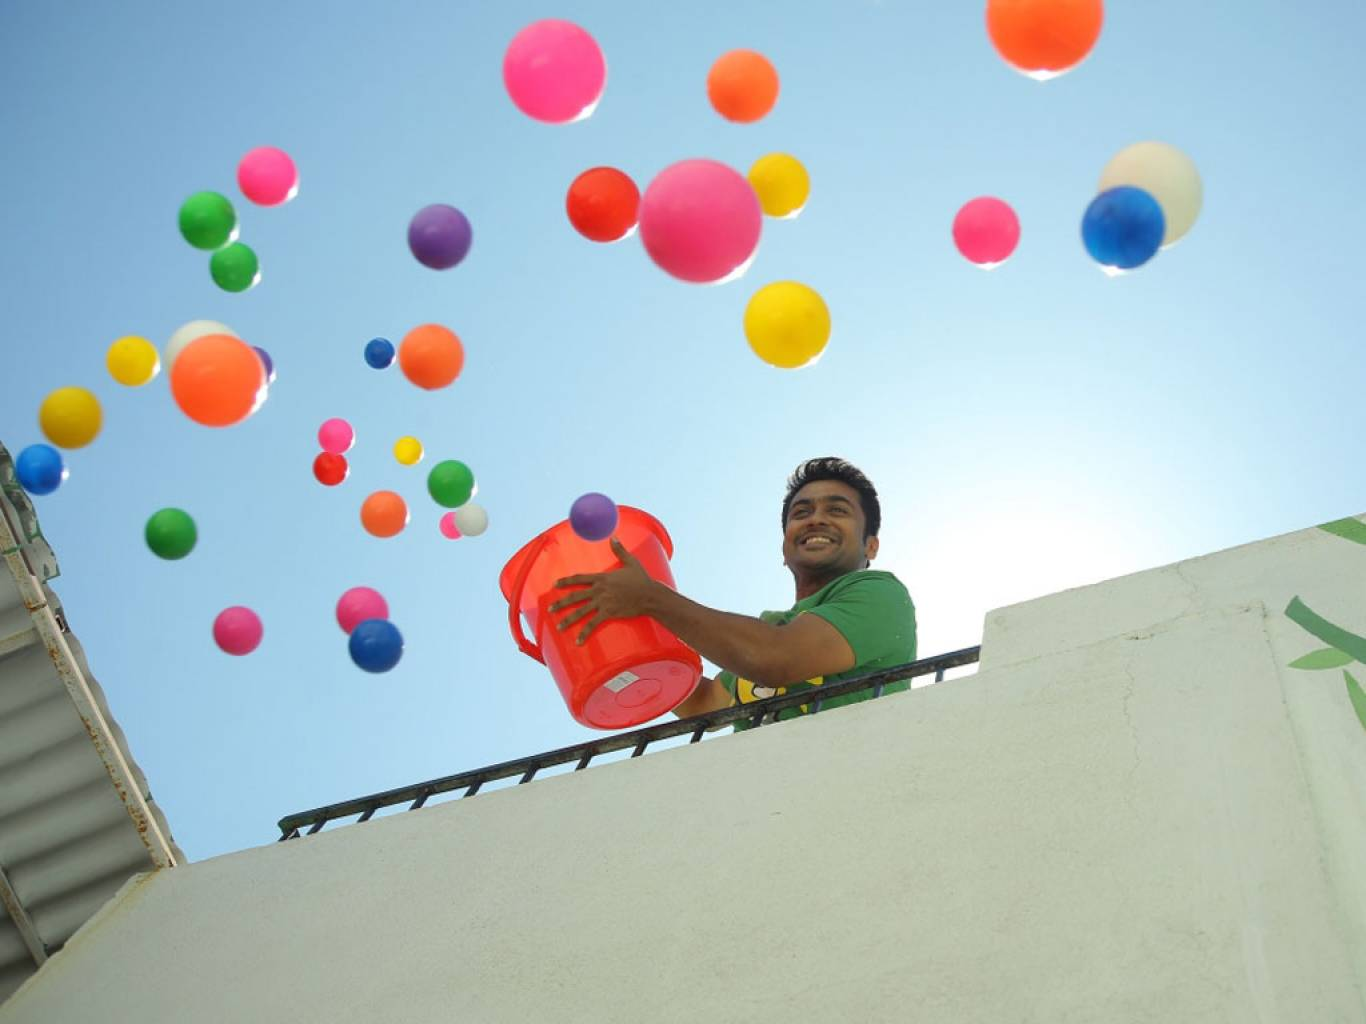 Pasanga 2 Wallpapers